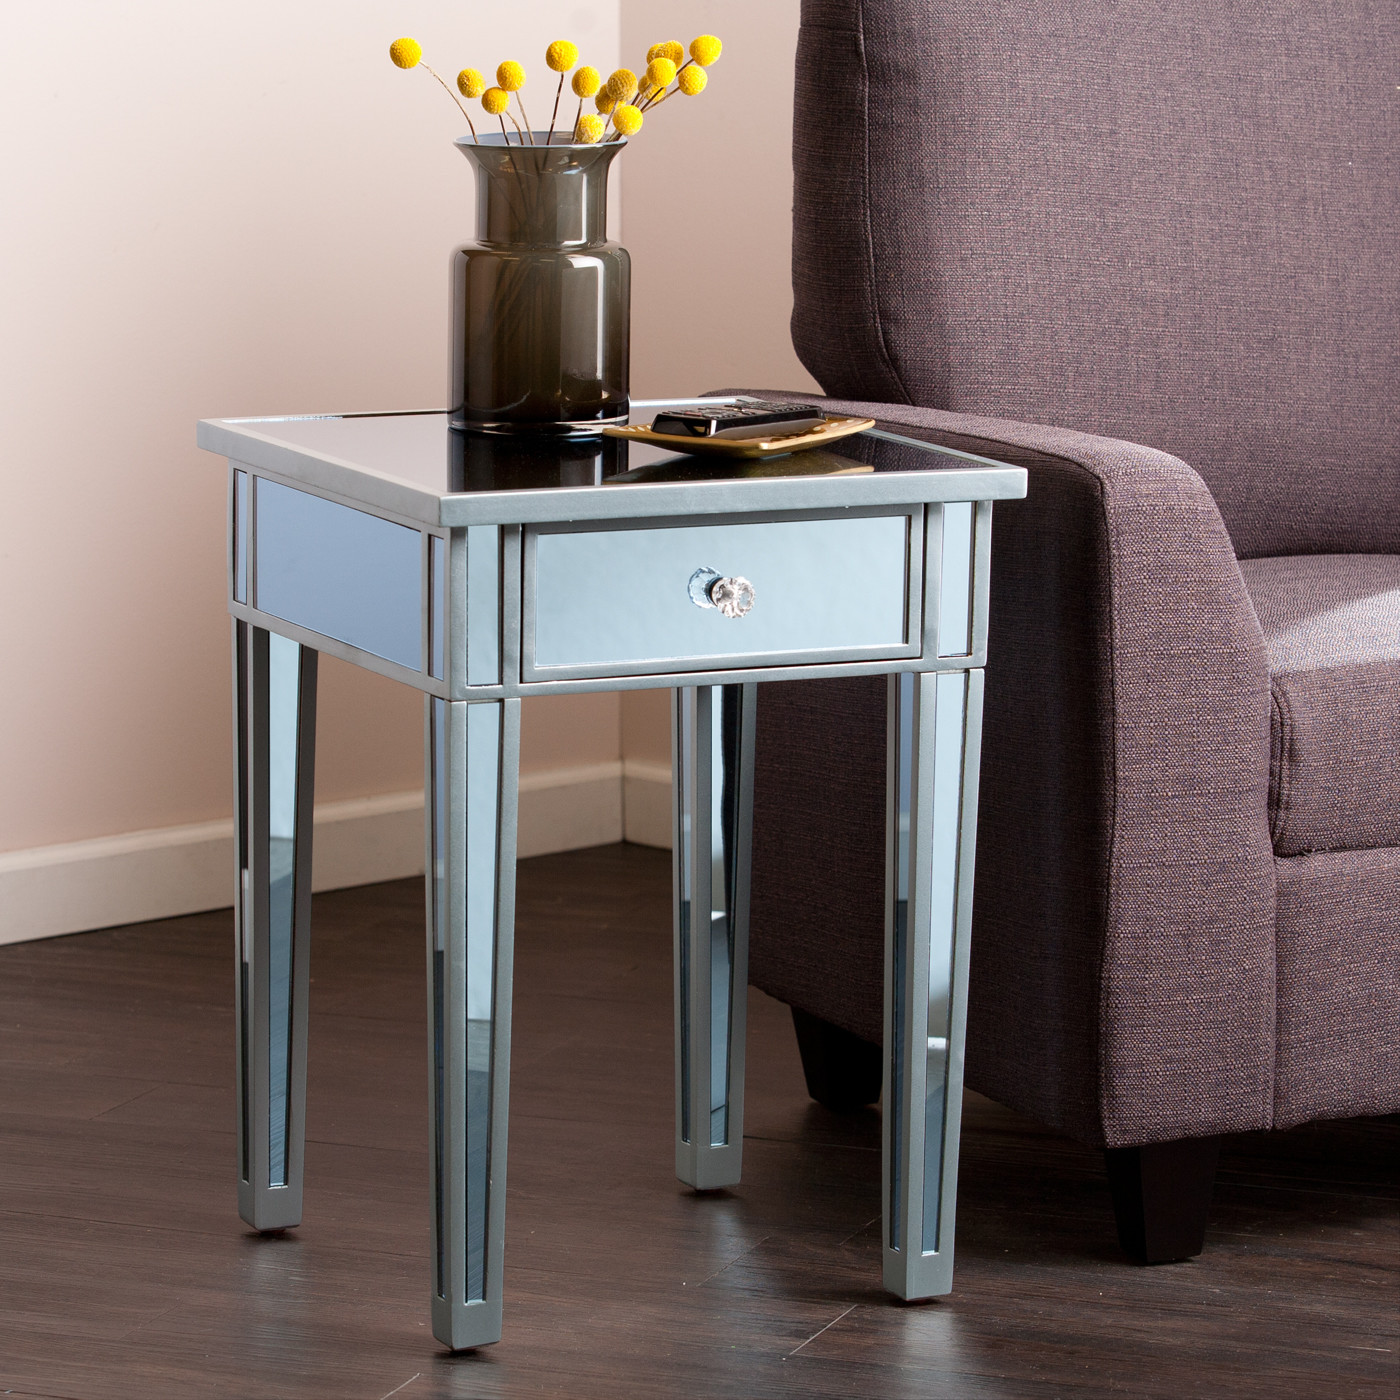 mirrored accent table hotel odaurze designs round kitchenette furniture light blue coffee pottery barn griffin hampton bay patio cushions keter ice diy dining west elm marble top